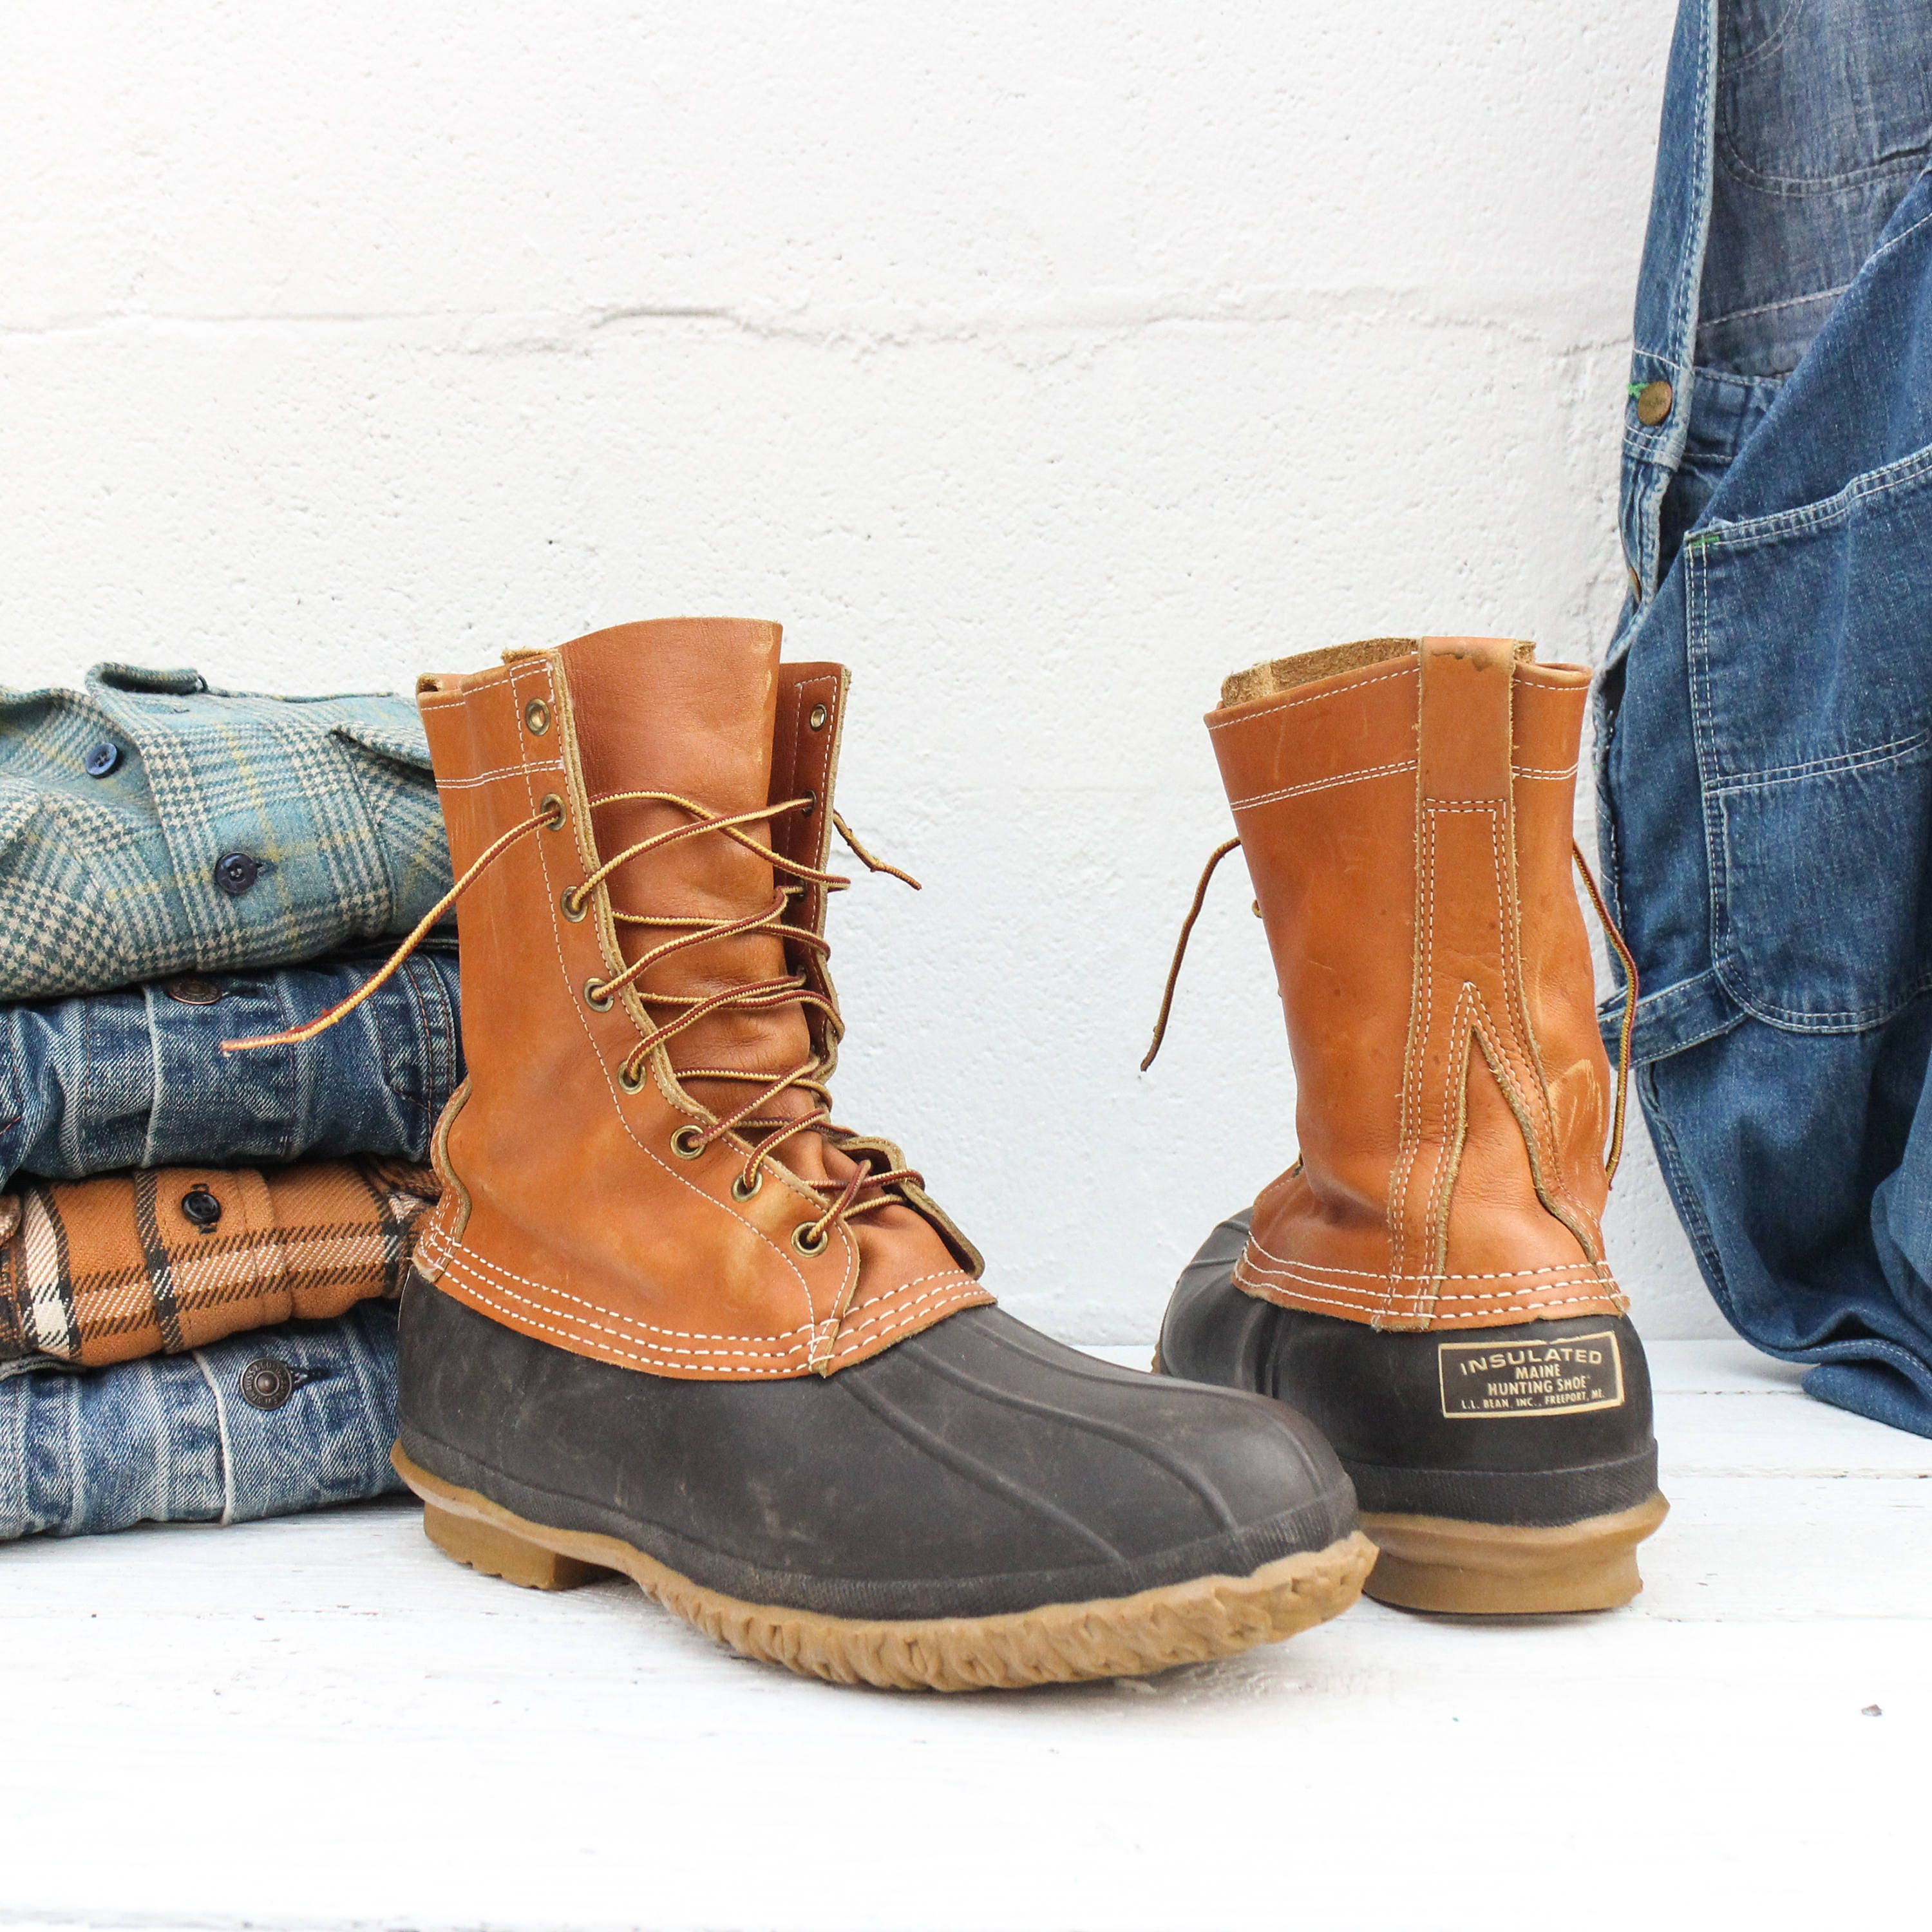 Fashion style How to maine wear hunting boots for lady